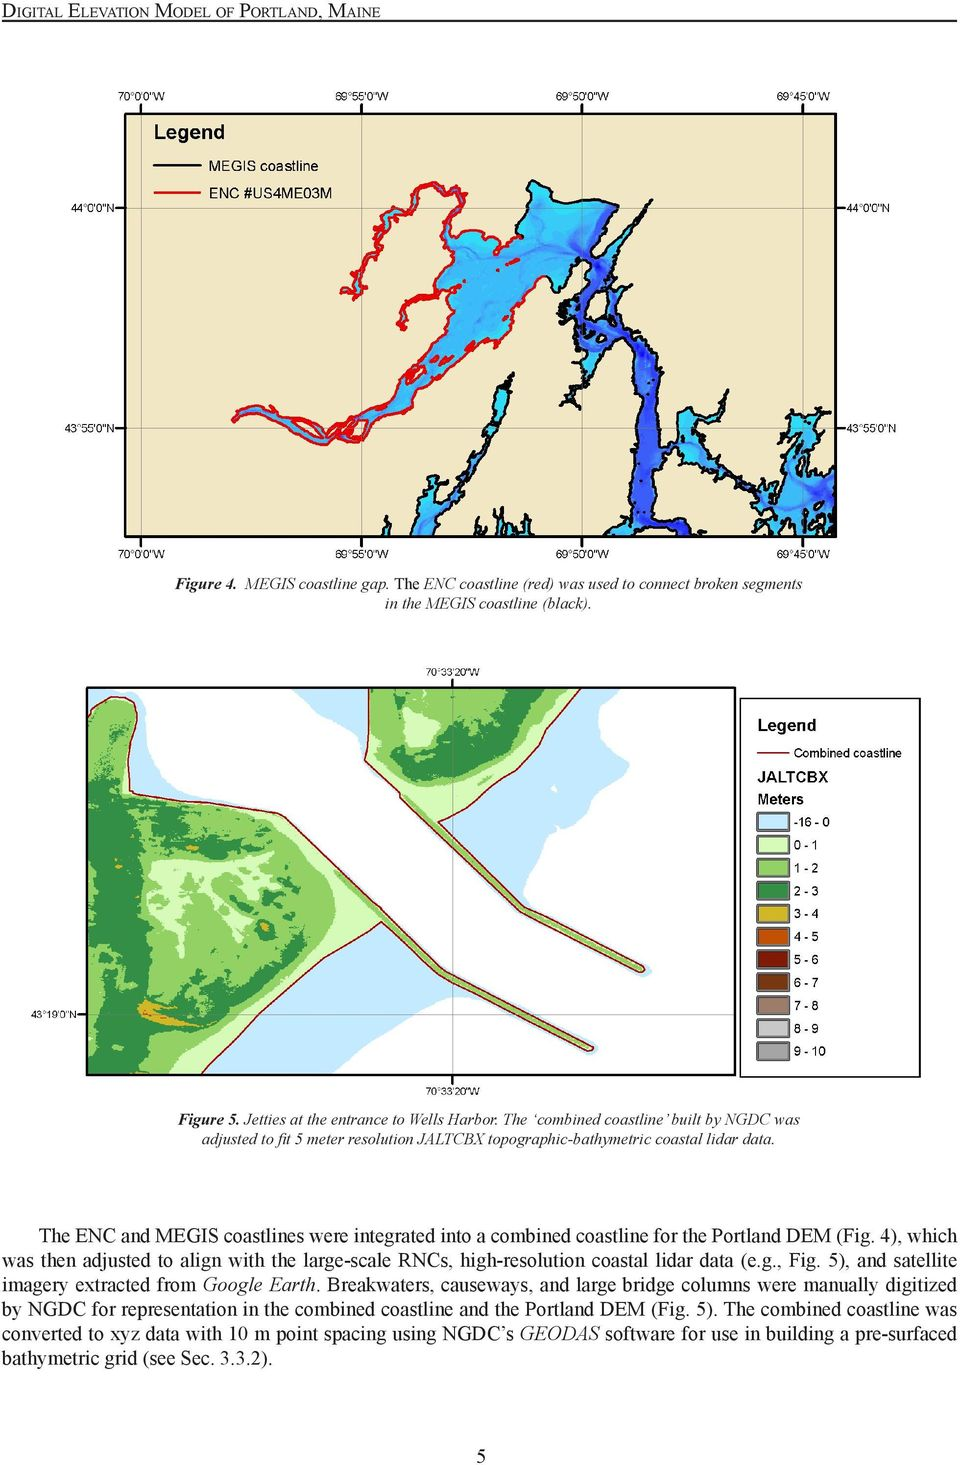 The ENC and MEGIS coastlines were integrated into a combined coastline for the Portland DEM (Fig. 4), which was then adjusted to align with the large-scale RNCs, high-resolution coastal lidar data (e.